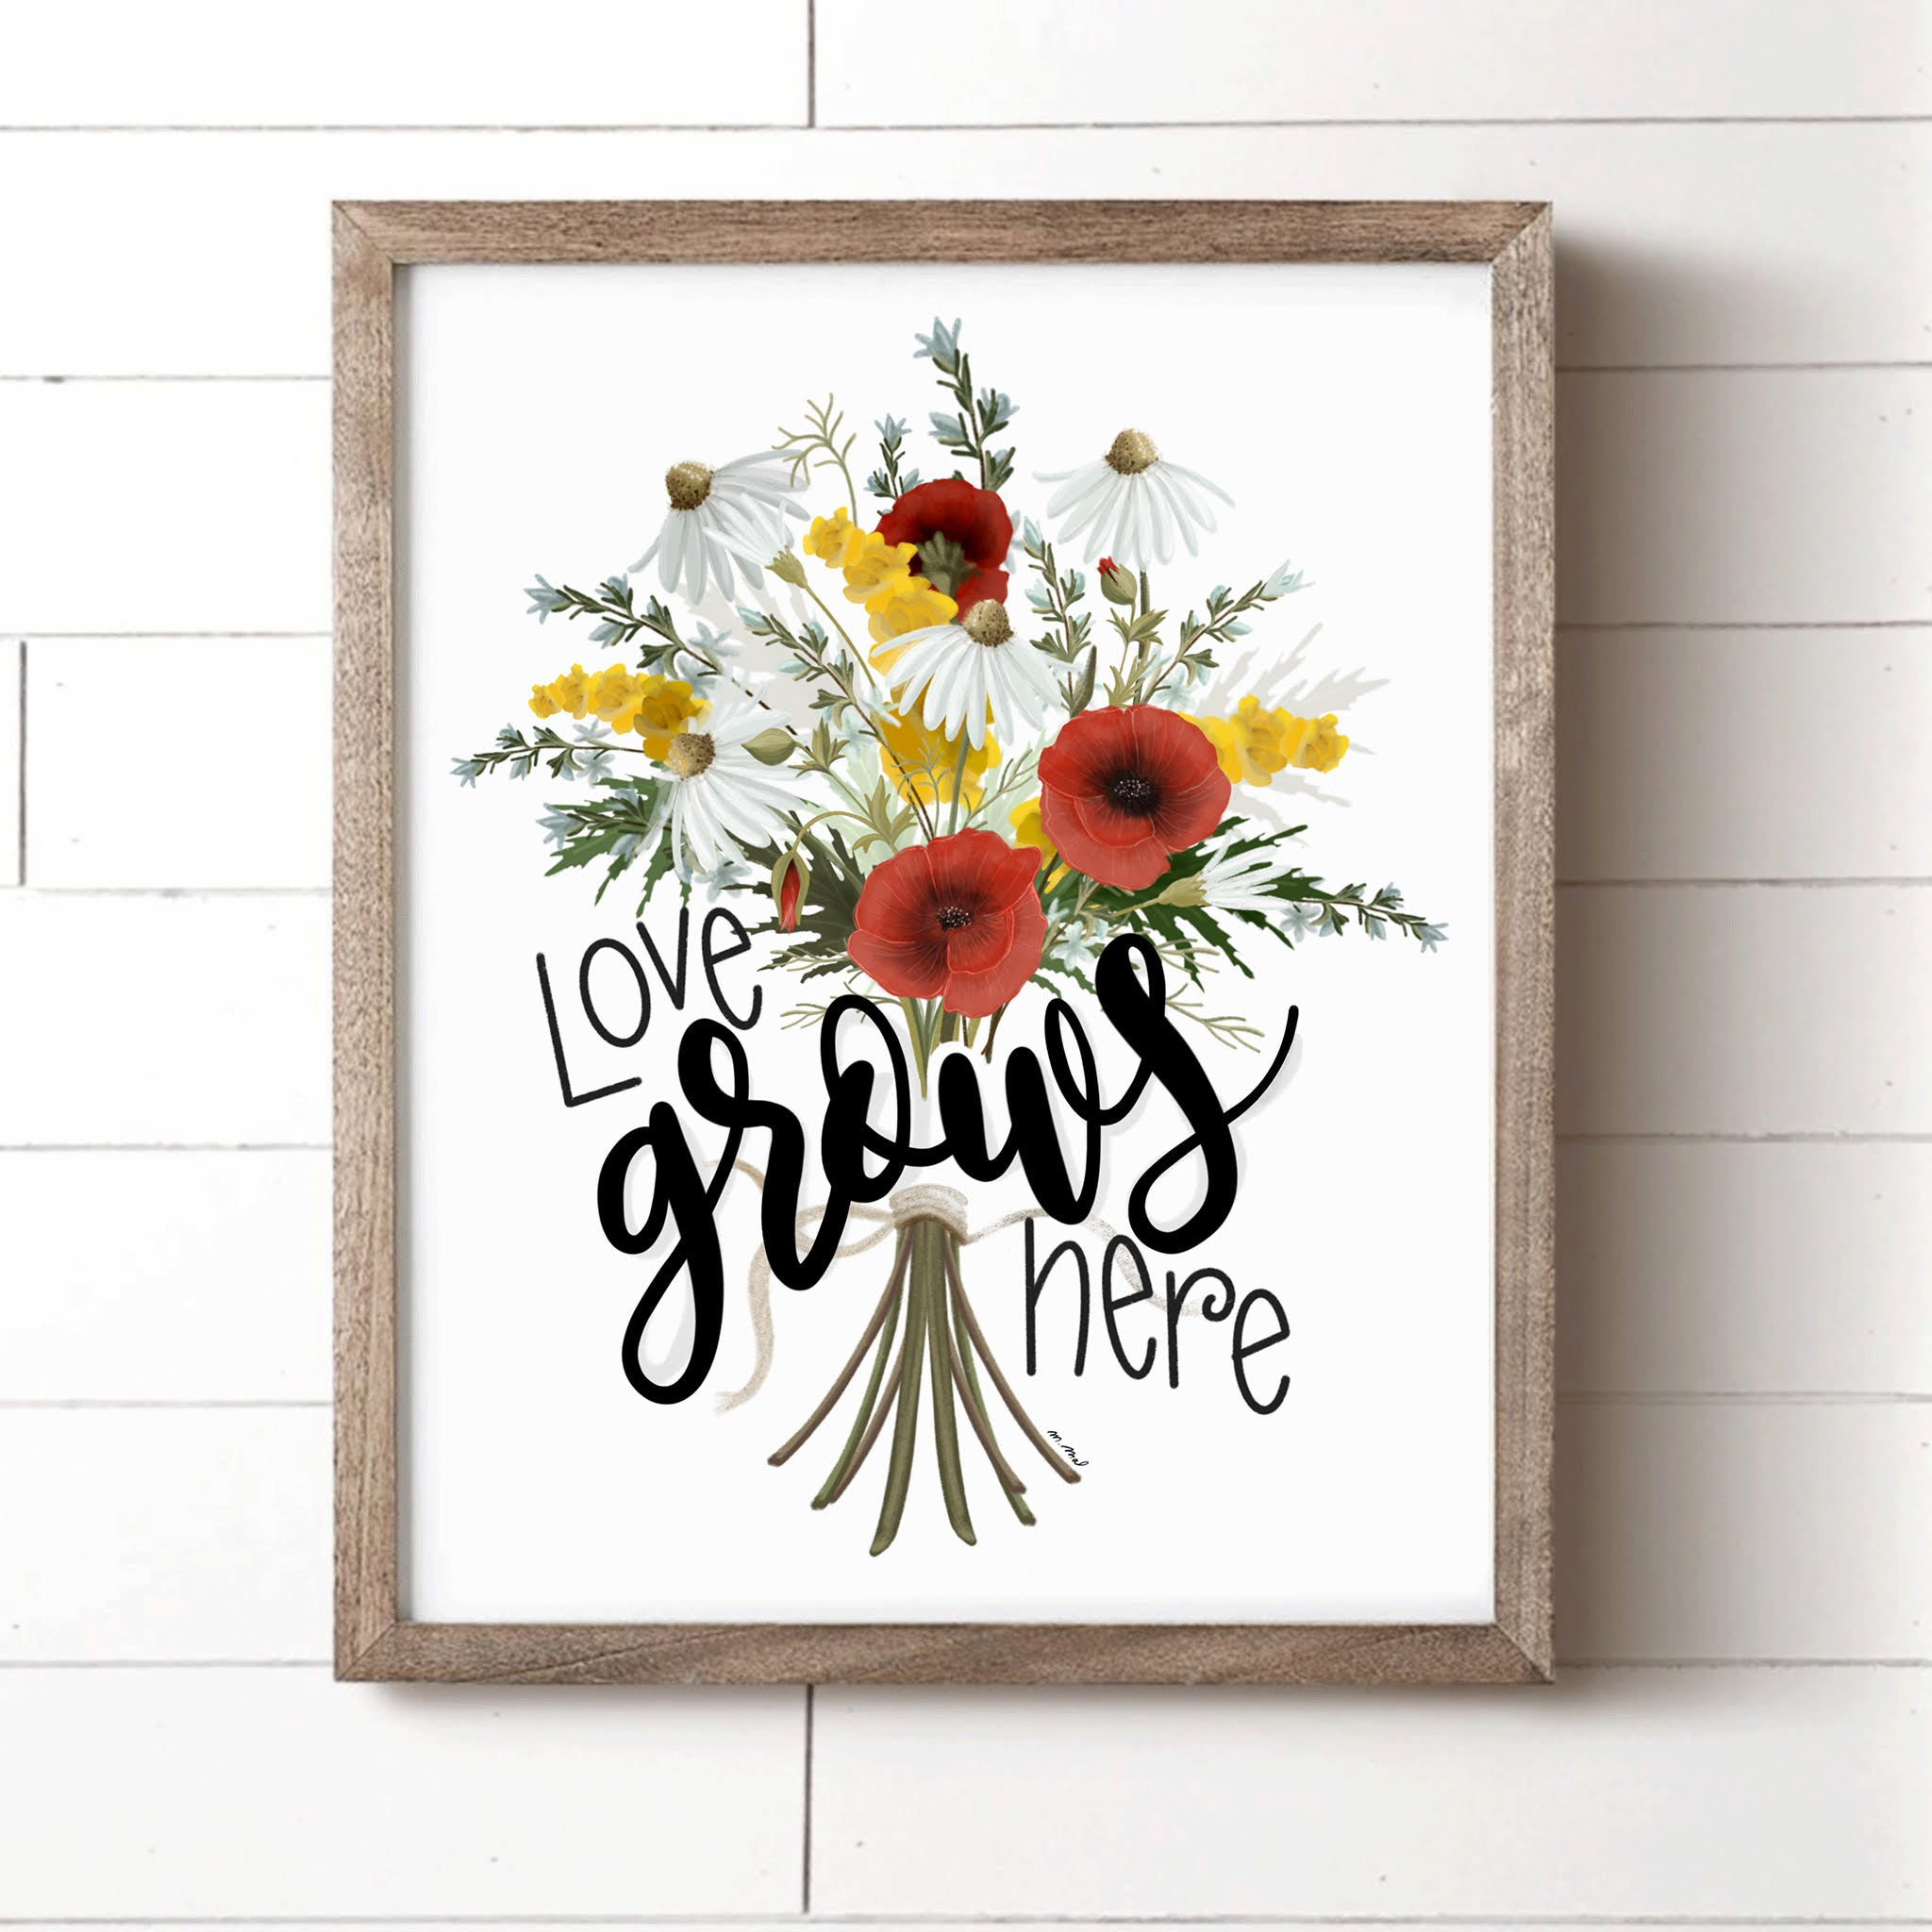 Love Grows Here Art Print created by Melissa at House Fenway